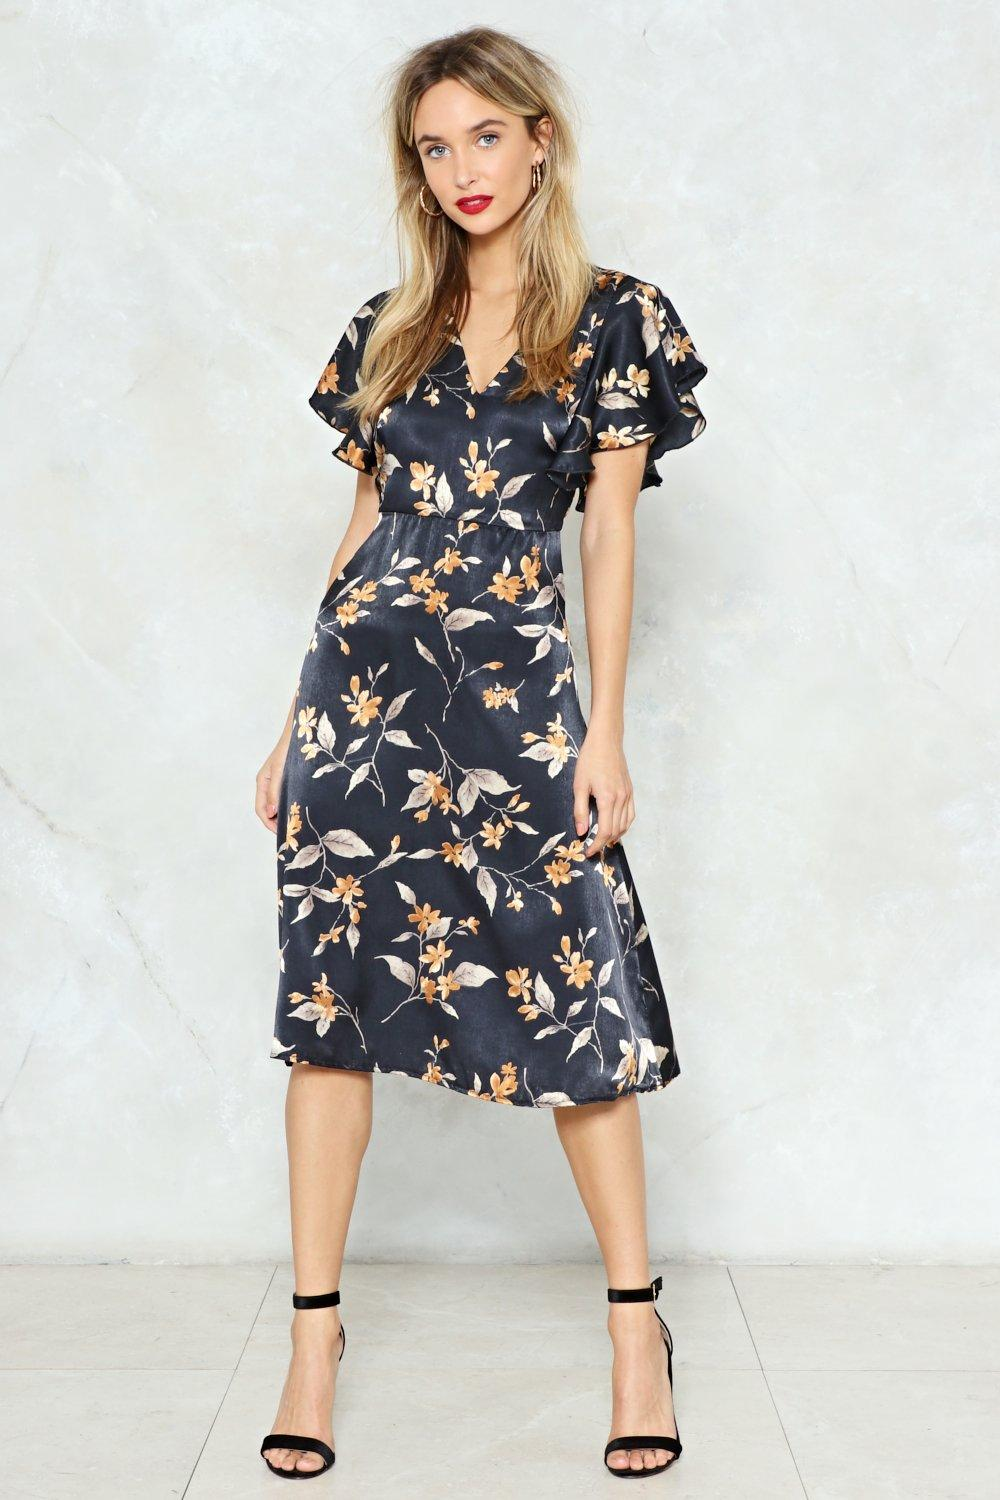 Midi Dresses with Sleeves